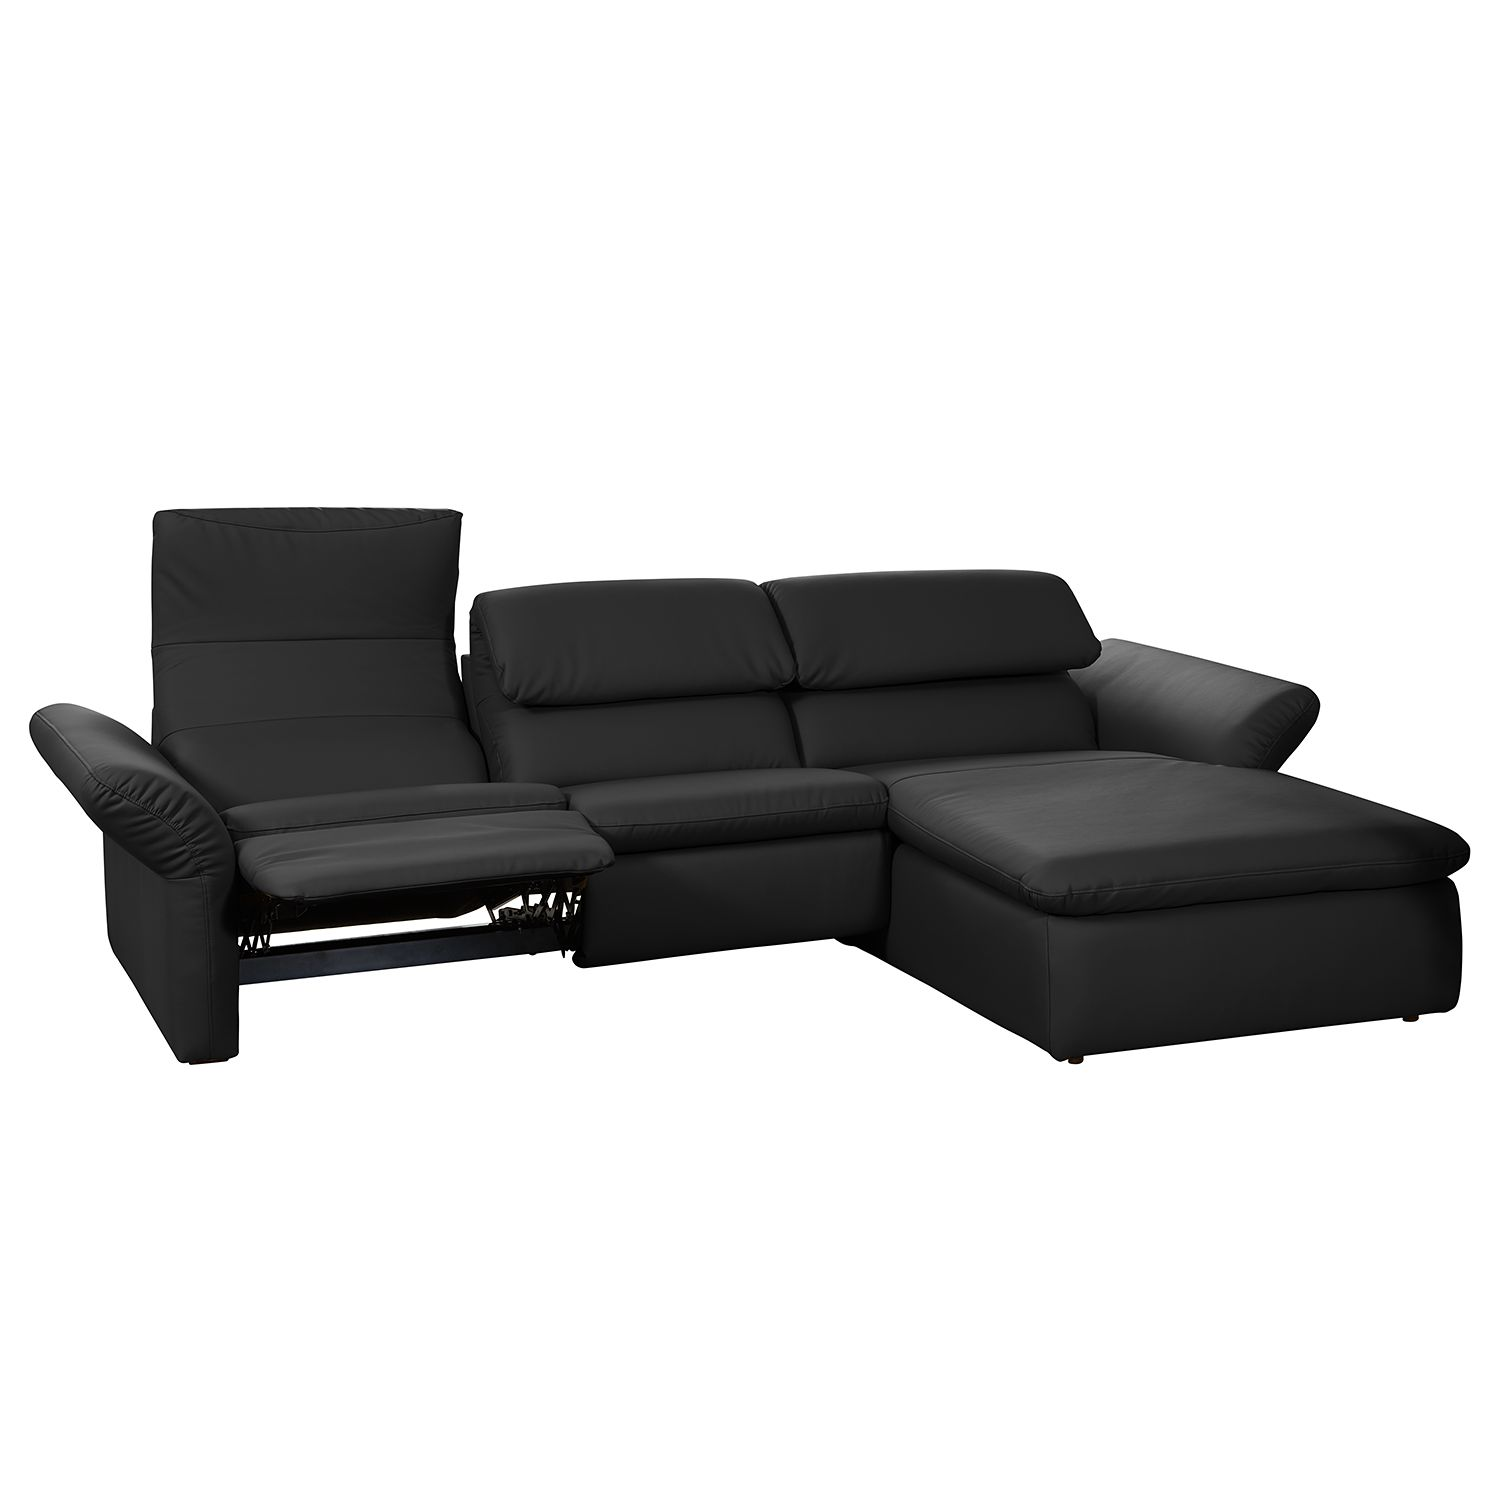 ecksofa mit relaxfunktion inspirierendes. Black Bedroom Furniture Sets. Home Design Ideas